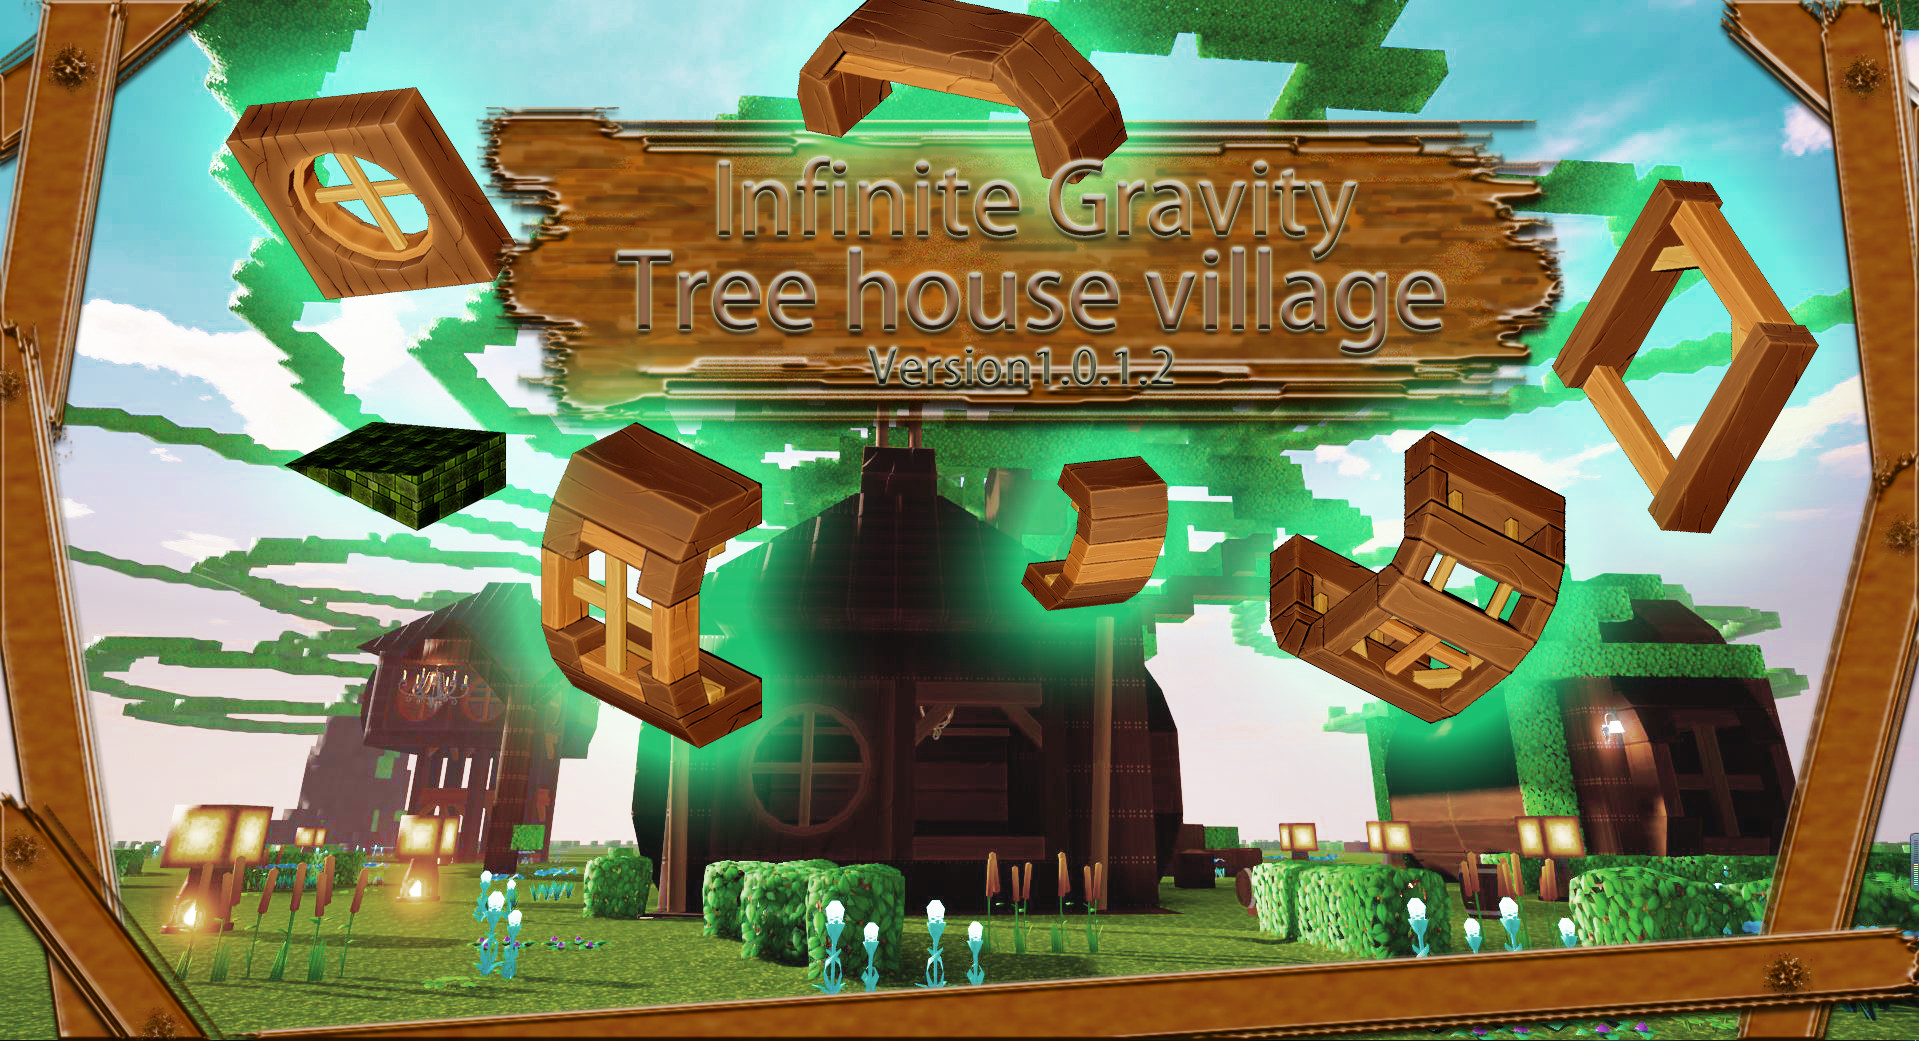 Infinite Gravity System Requirements - Can I Run It